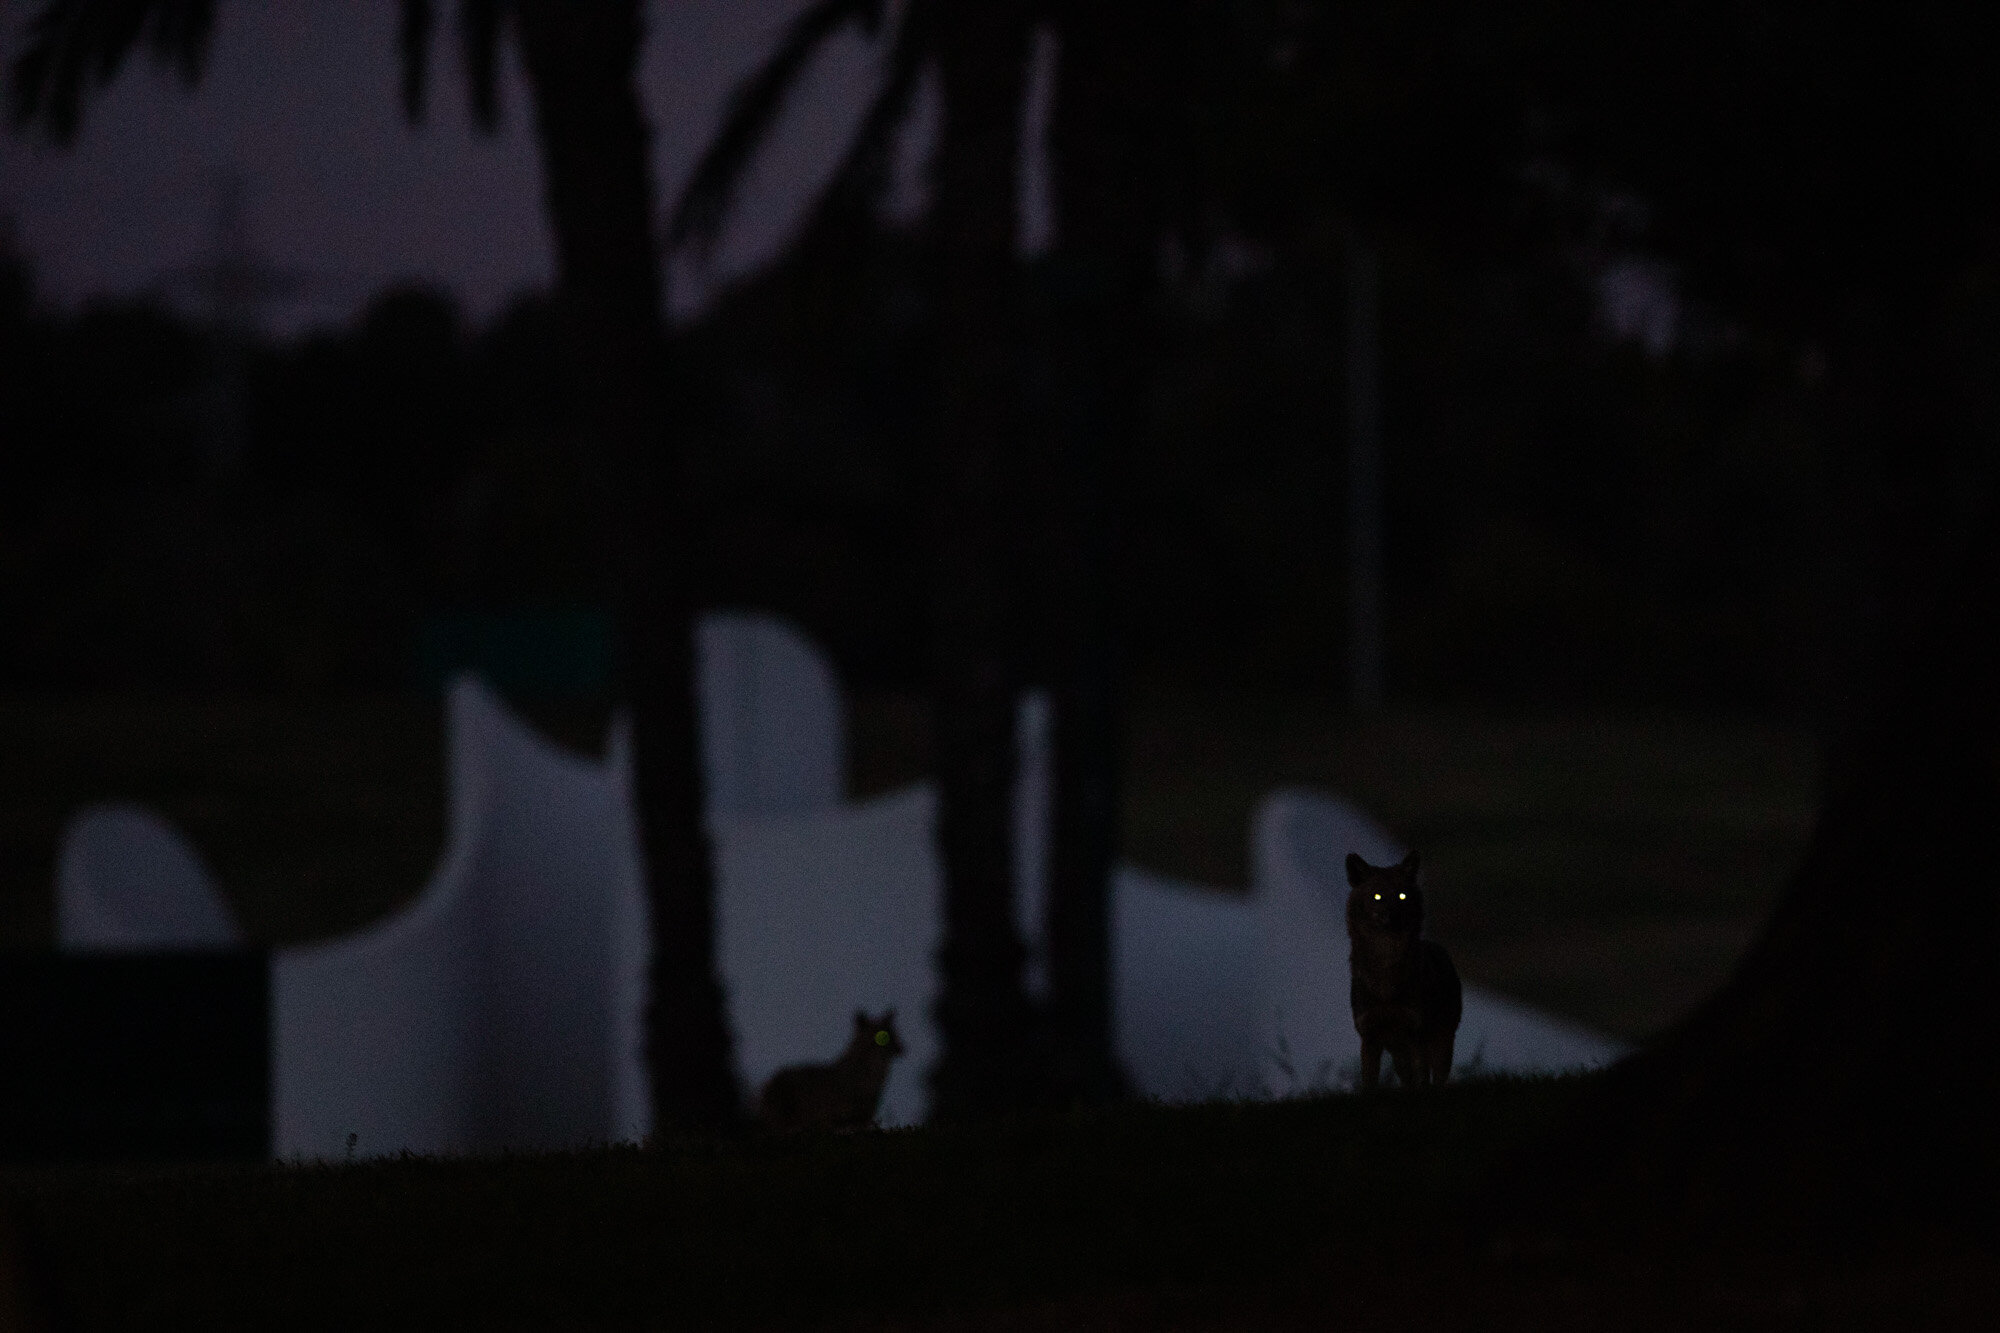 Jackals roam in the night in Tel Aviv's Hayarkon Park, which is empty as the city is in lockdown due to the coronavirus pandemic, on April 9, 2020. (AP Photo/Oded Balilty)